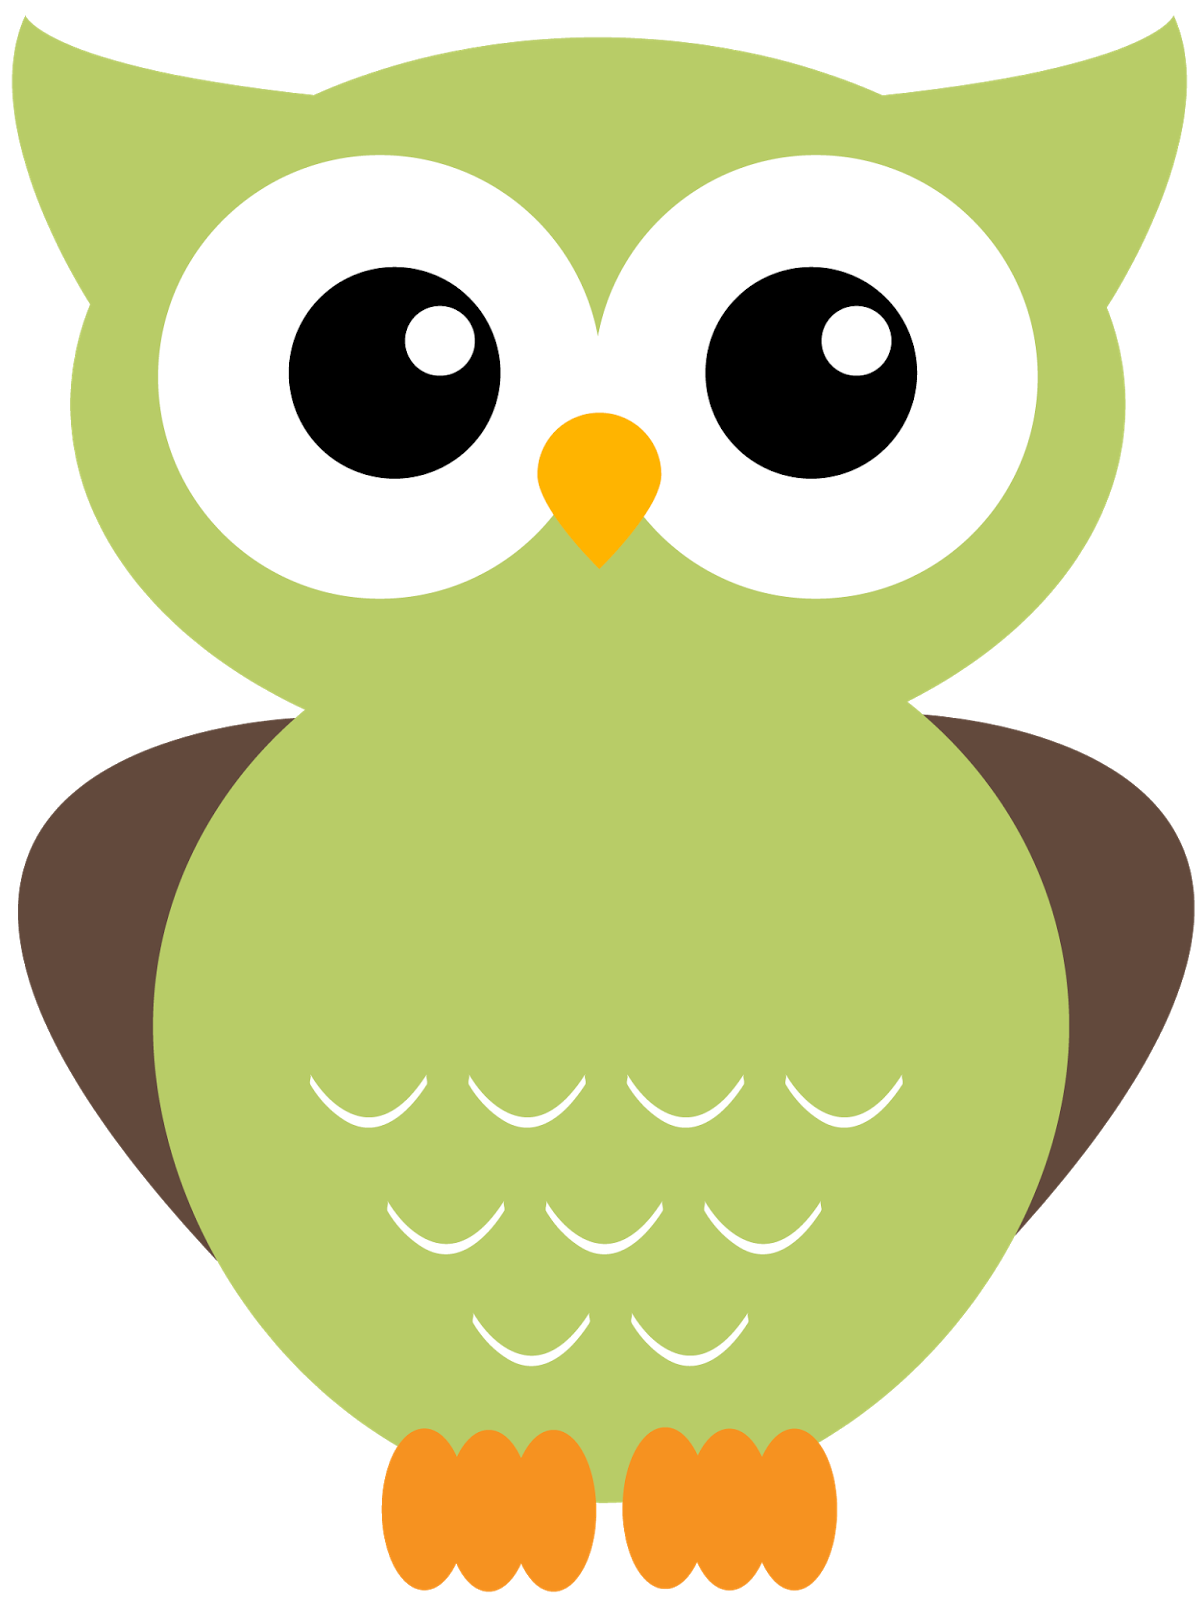 12 More Adorable Owl Printables!!!! | Buhos | Pinterest | Eule und ...